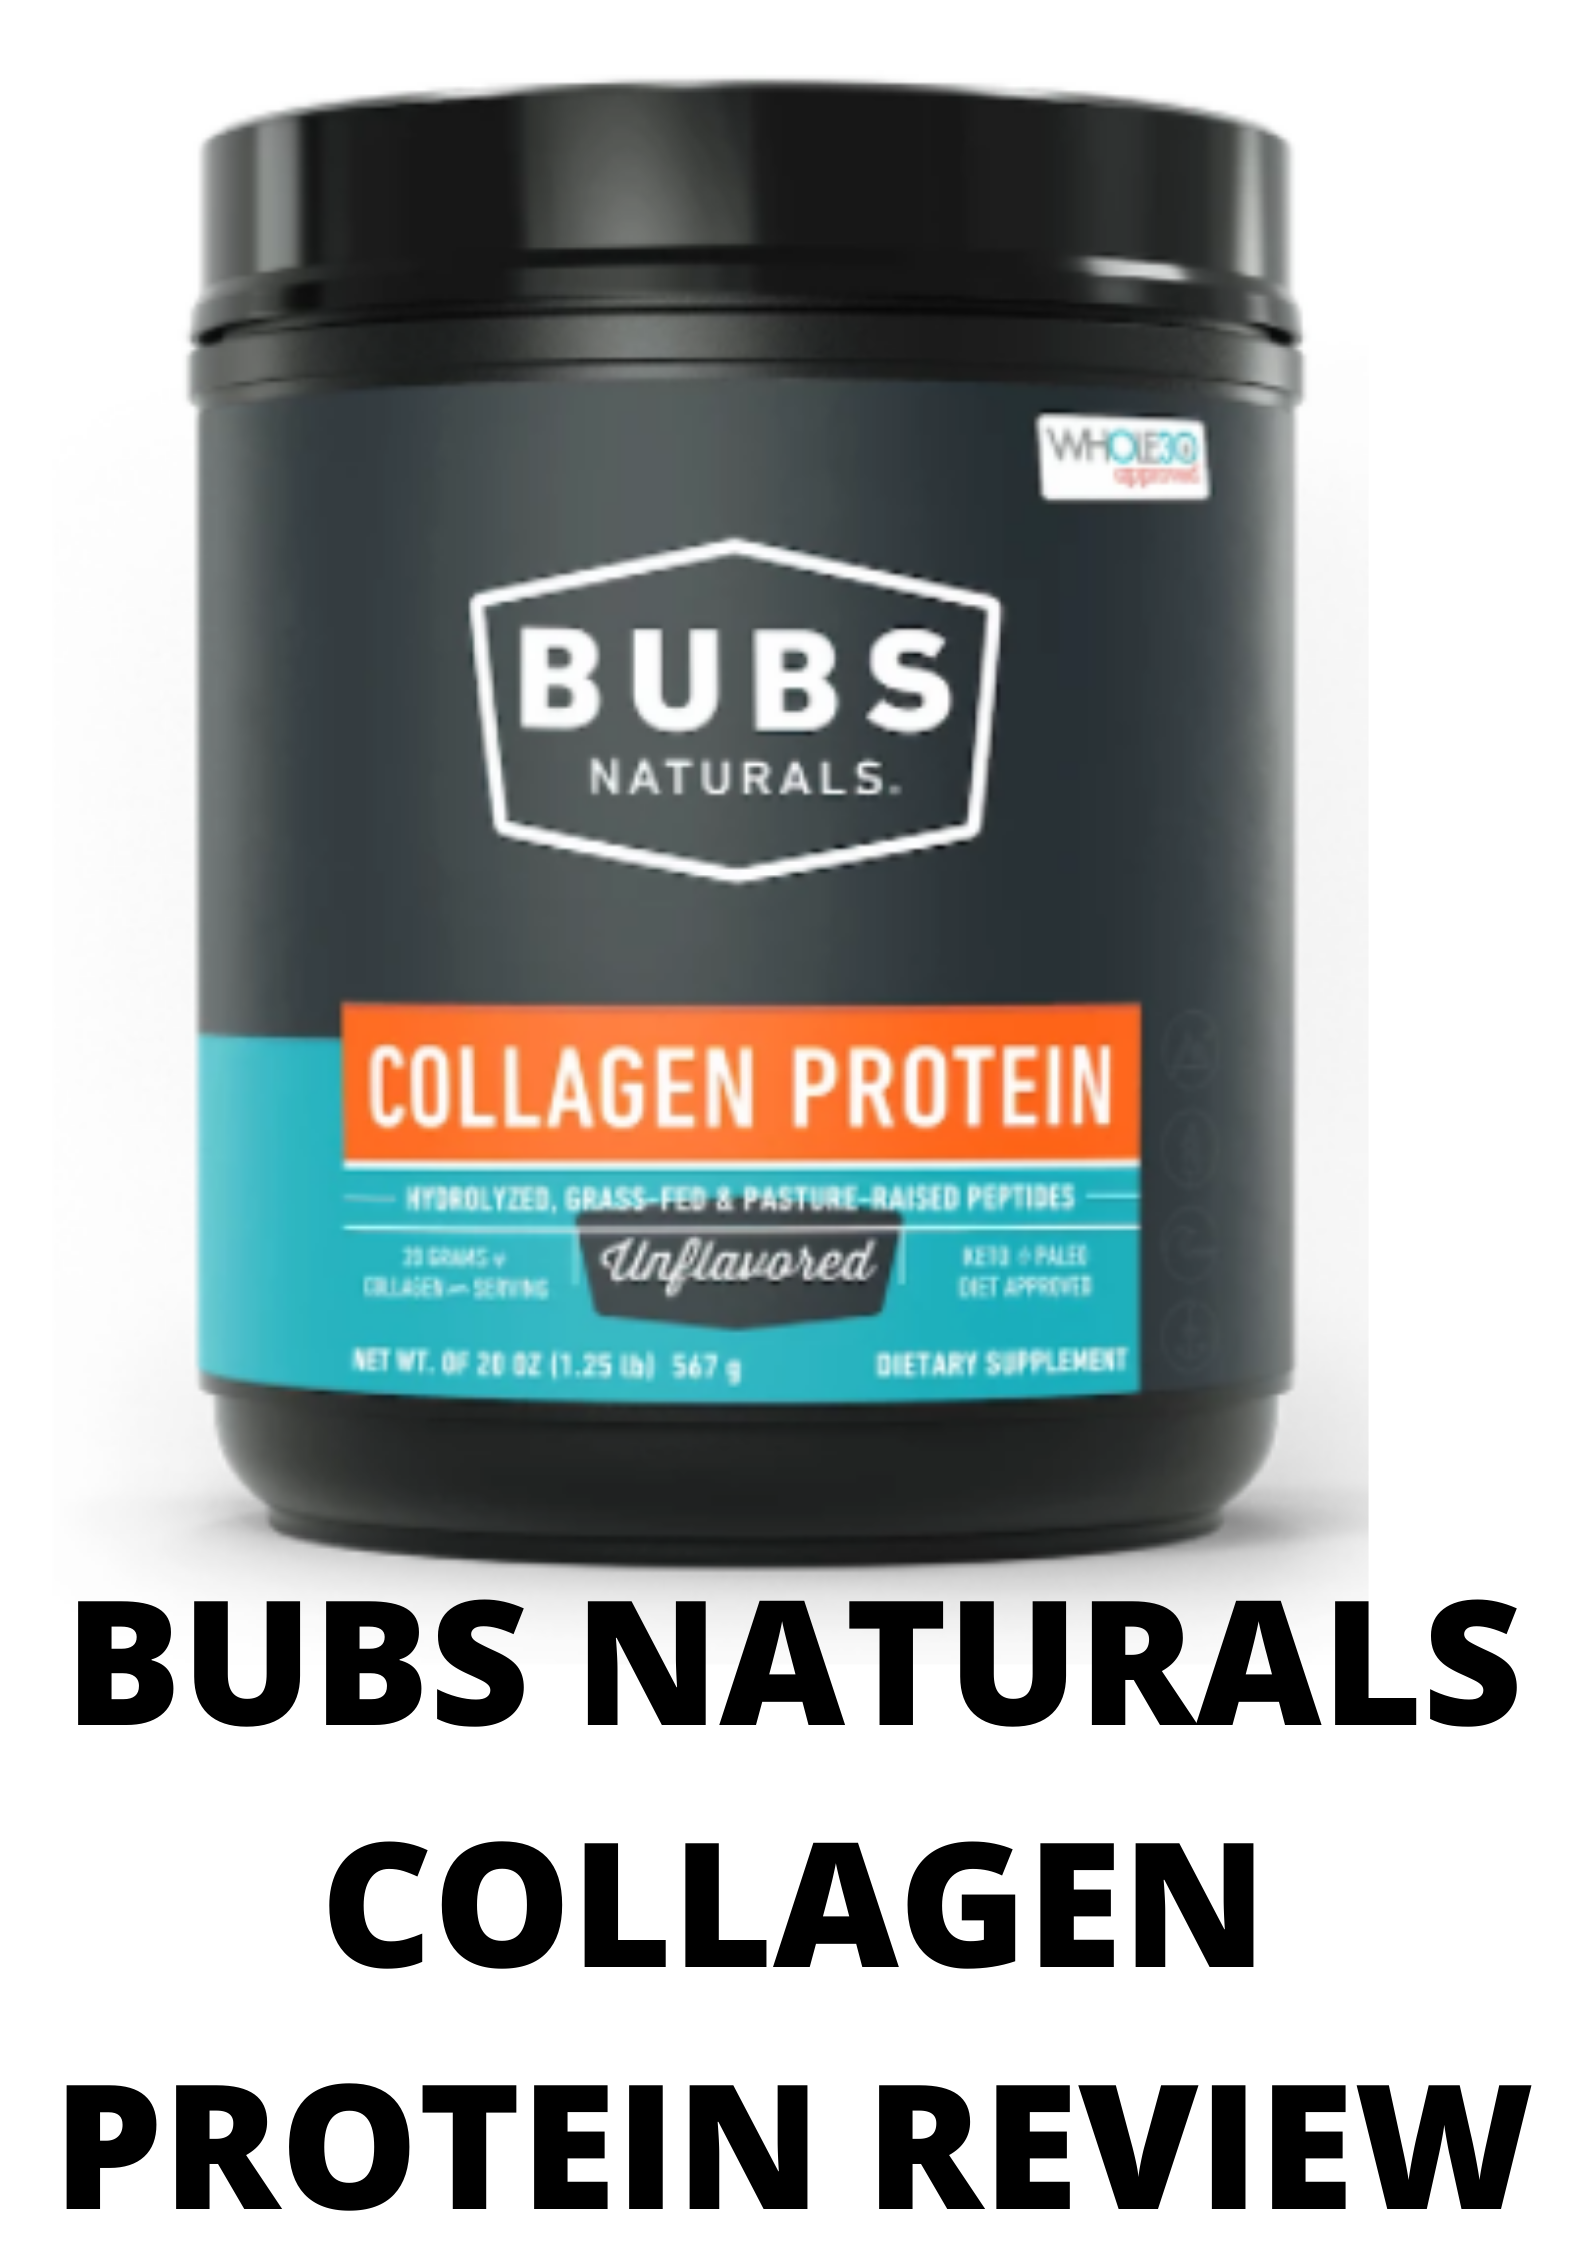 Bubs Naturals Collagen Protein Reviews-Good or scam product?